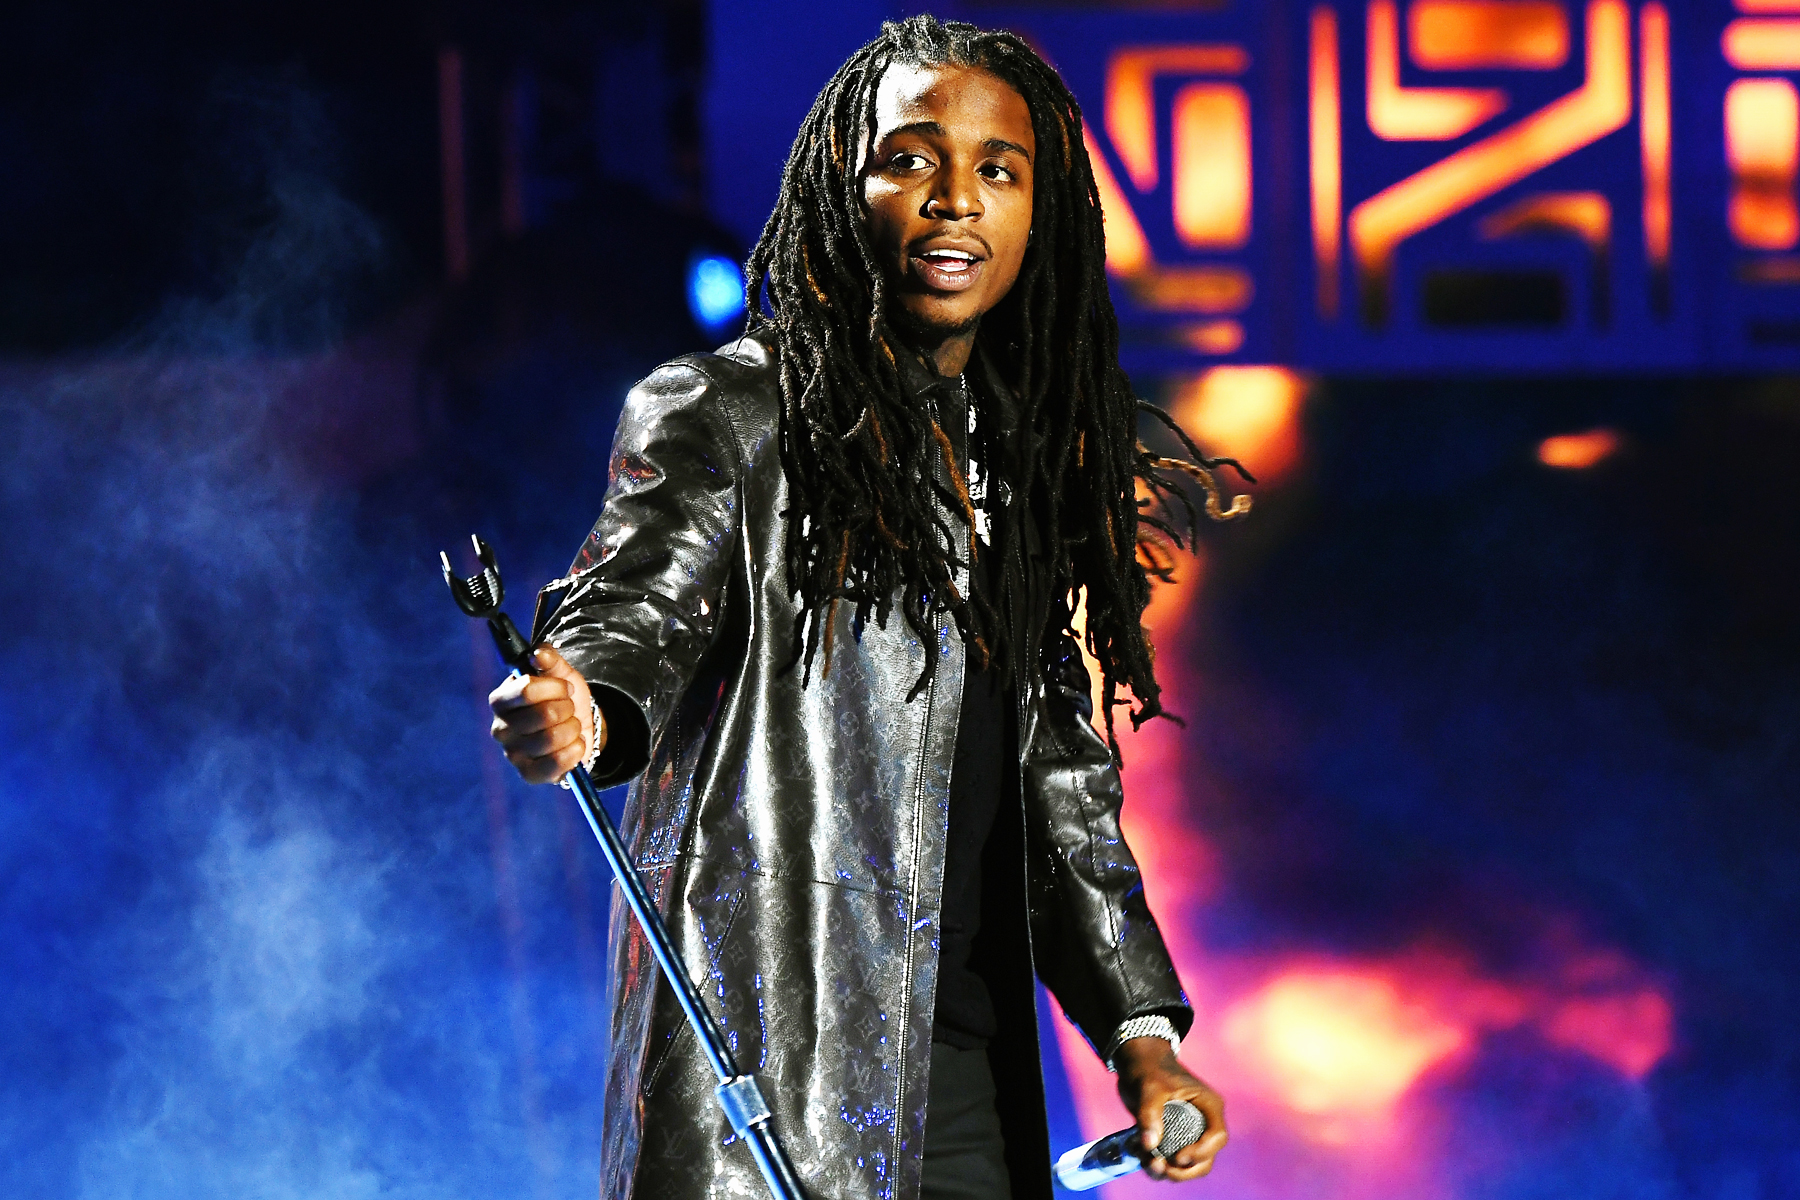 Jacquees Is The Self-Proclaimed King of R&B (Maybe He's Right